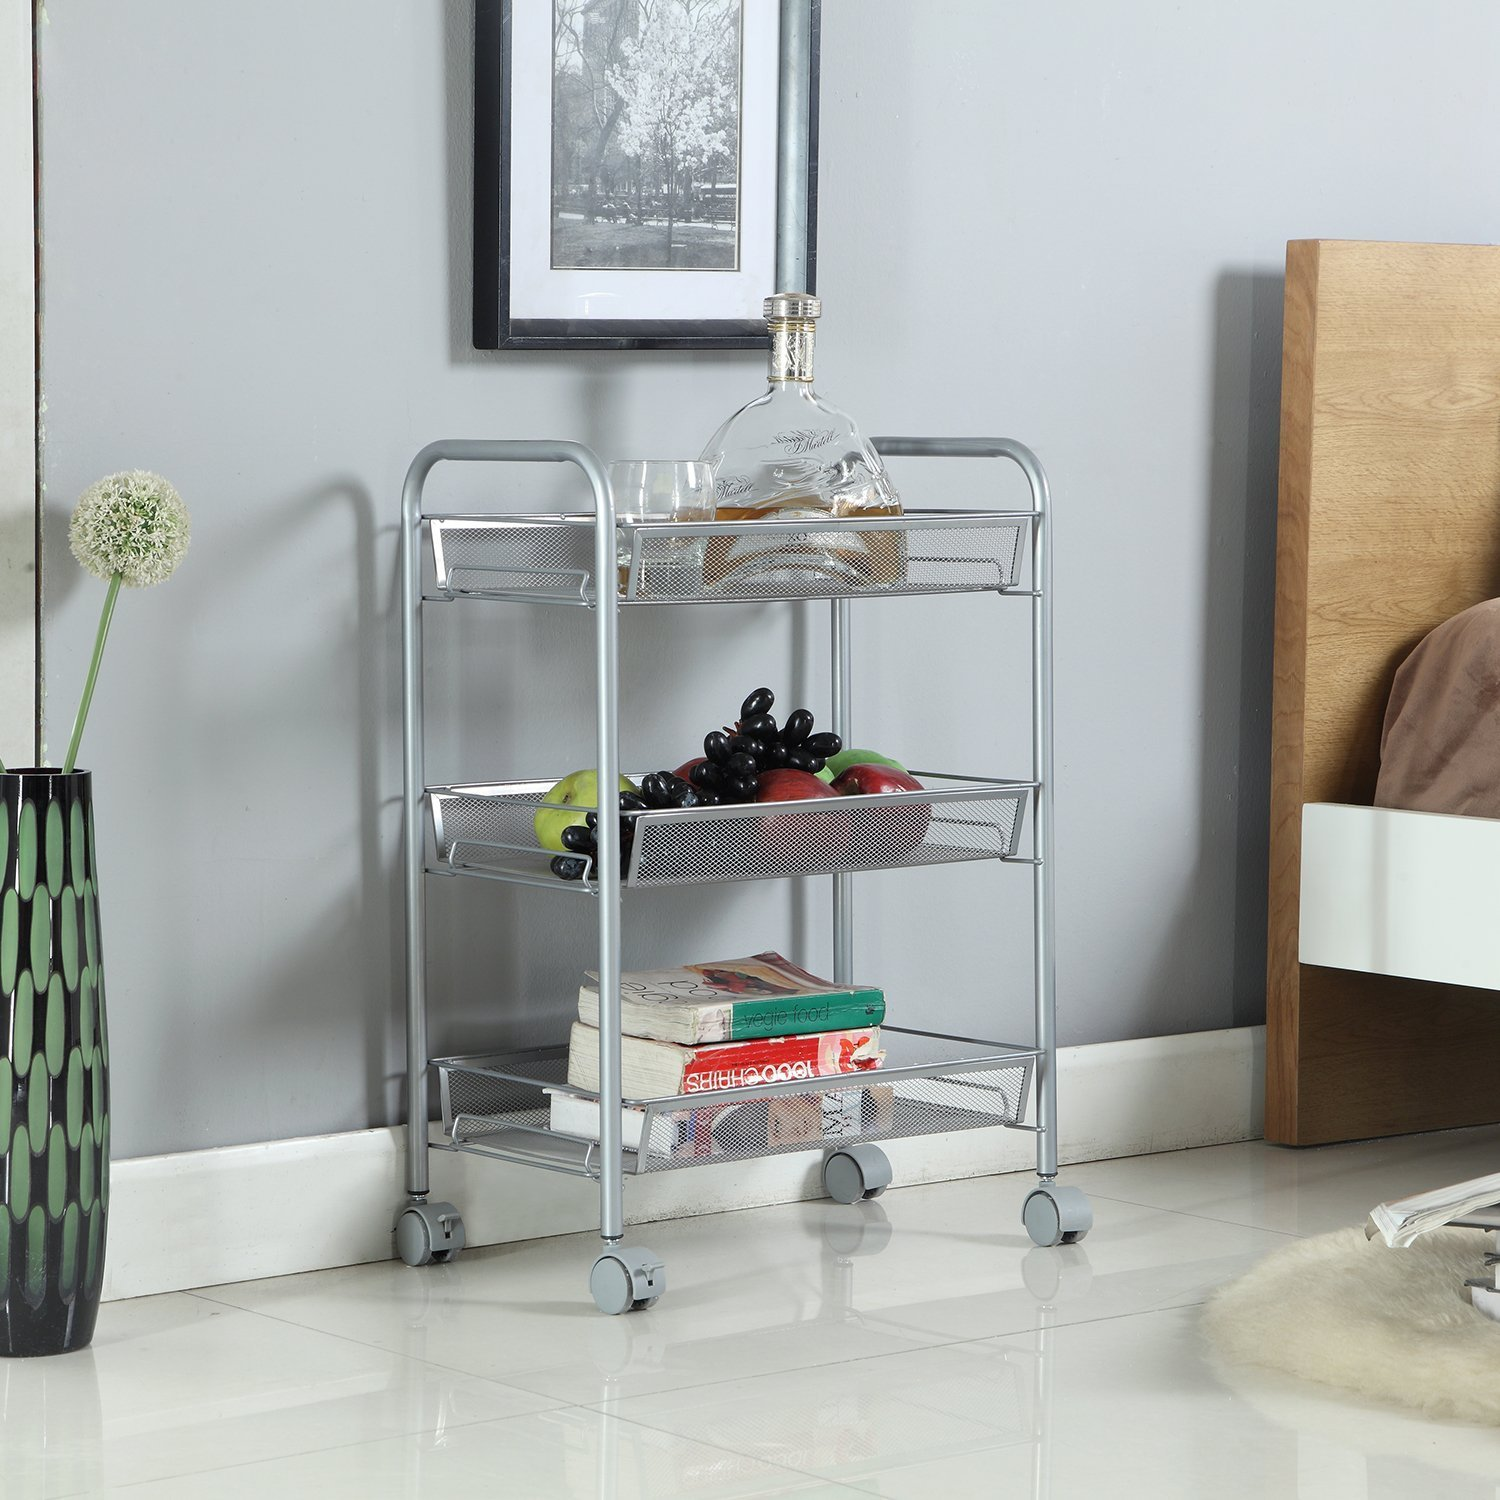 3-Tier Kitchen Carts on Wheels | Bathroom Shelving ...